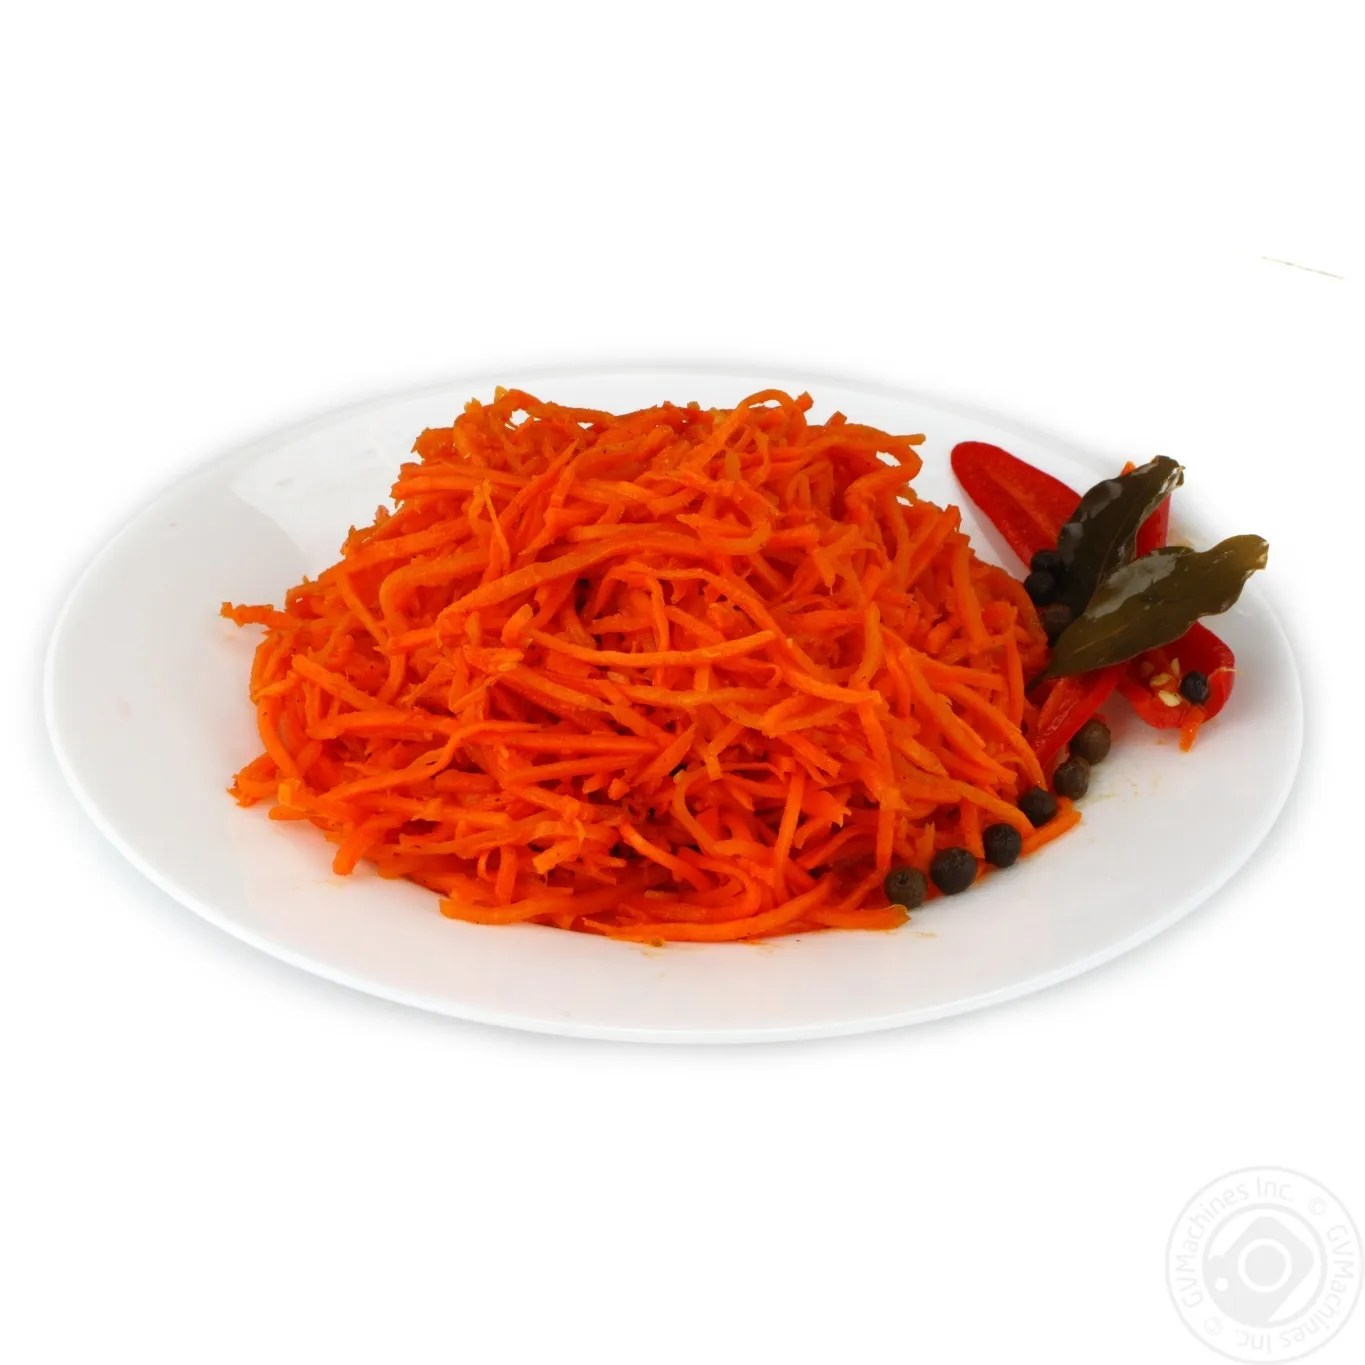 Eko Cuisine Salad Eko Market Korean Carrot Korean Ready Meals Salads